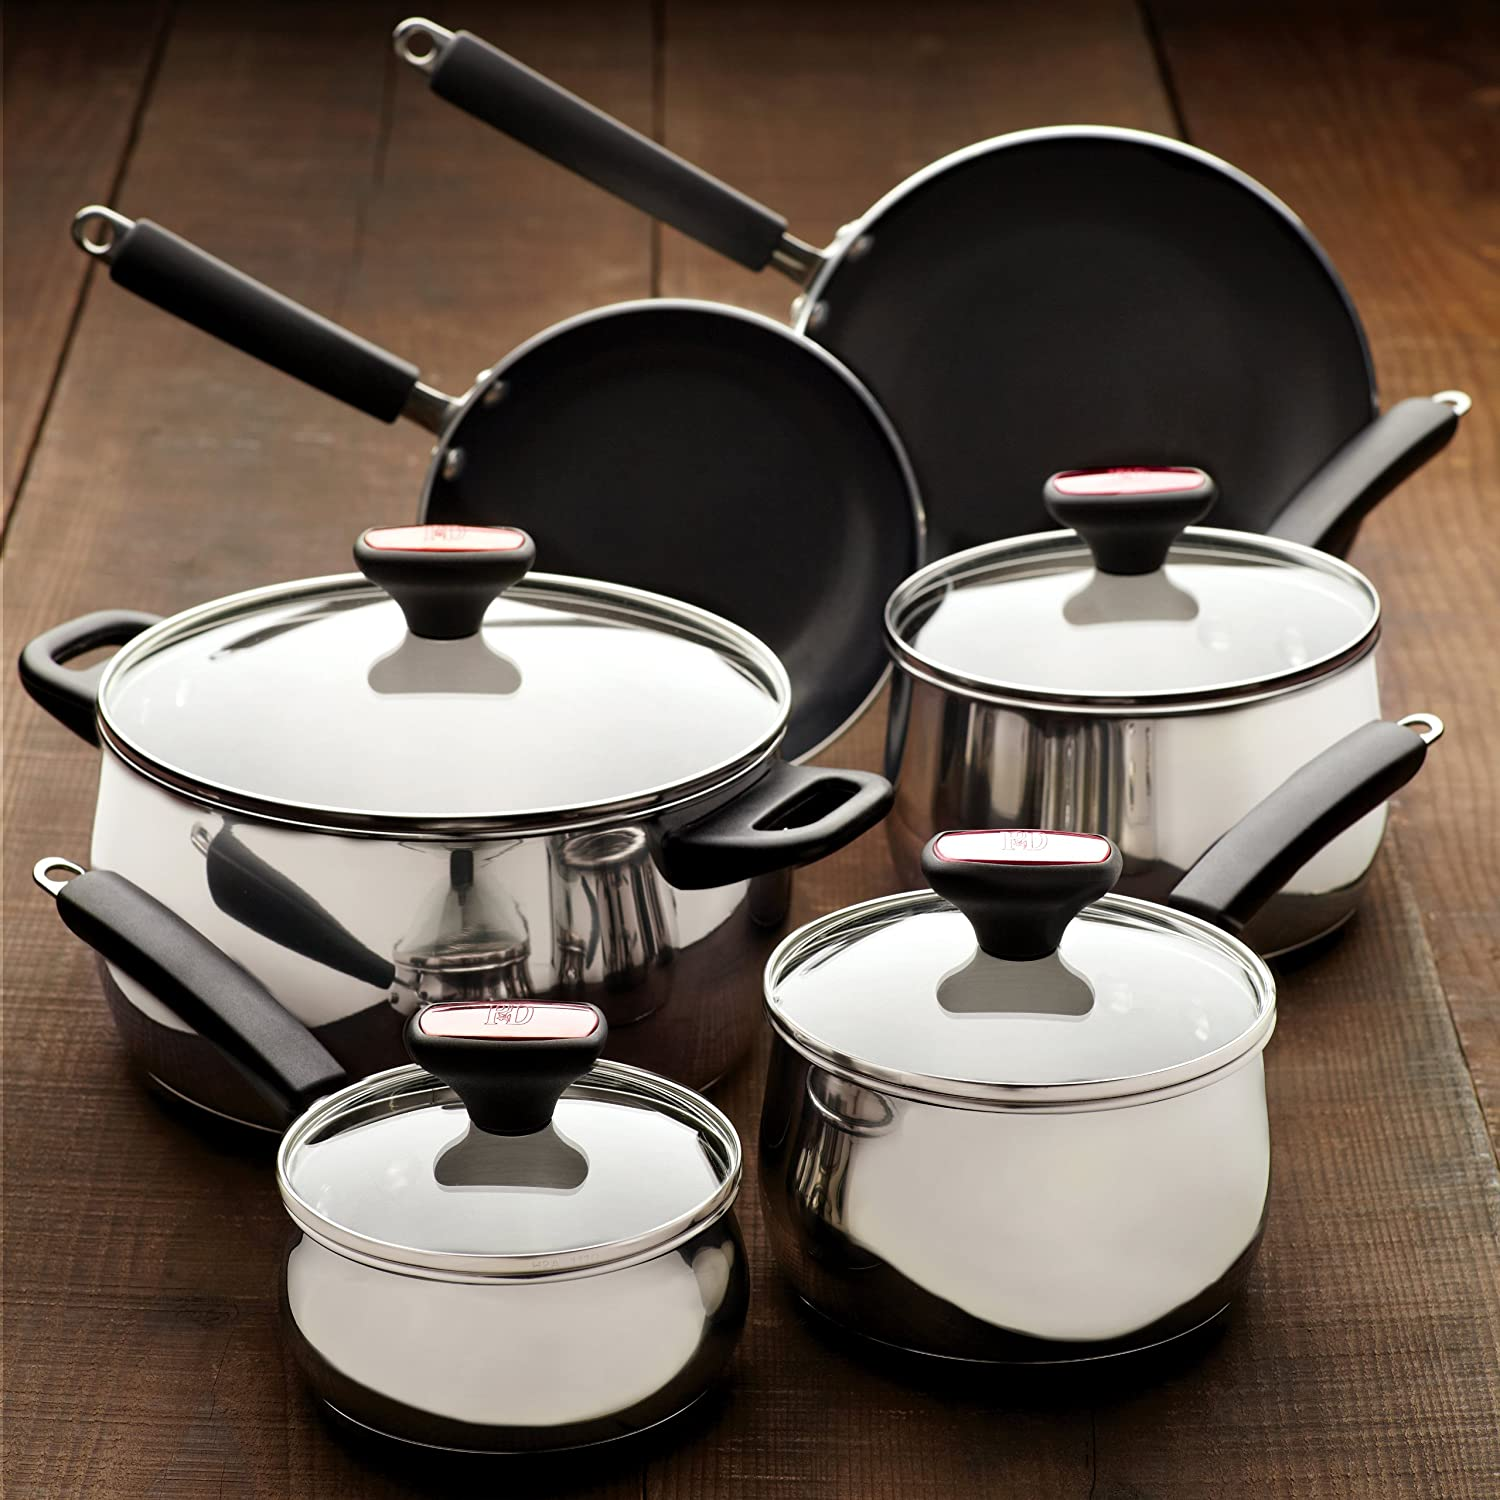 12 Piece Nonstick Cookware Set Stainless Steel Aluminum